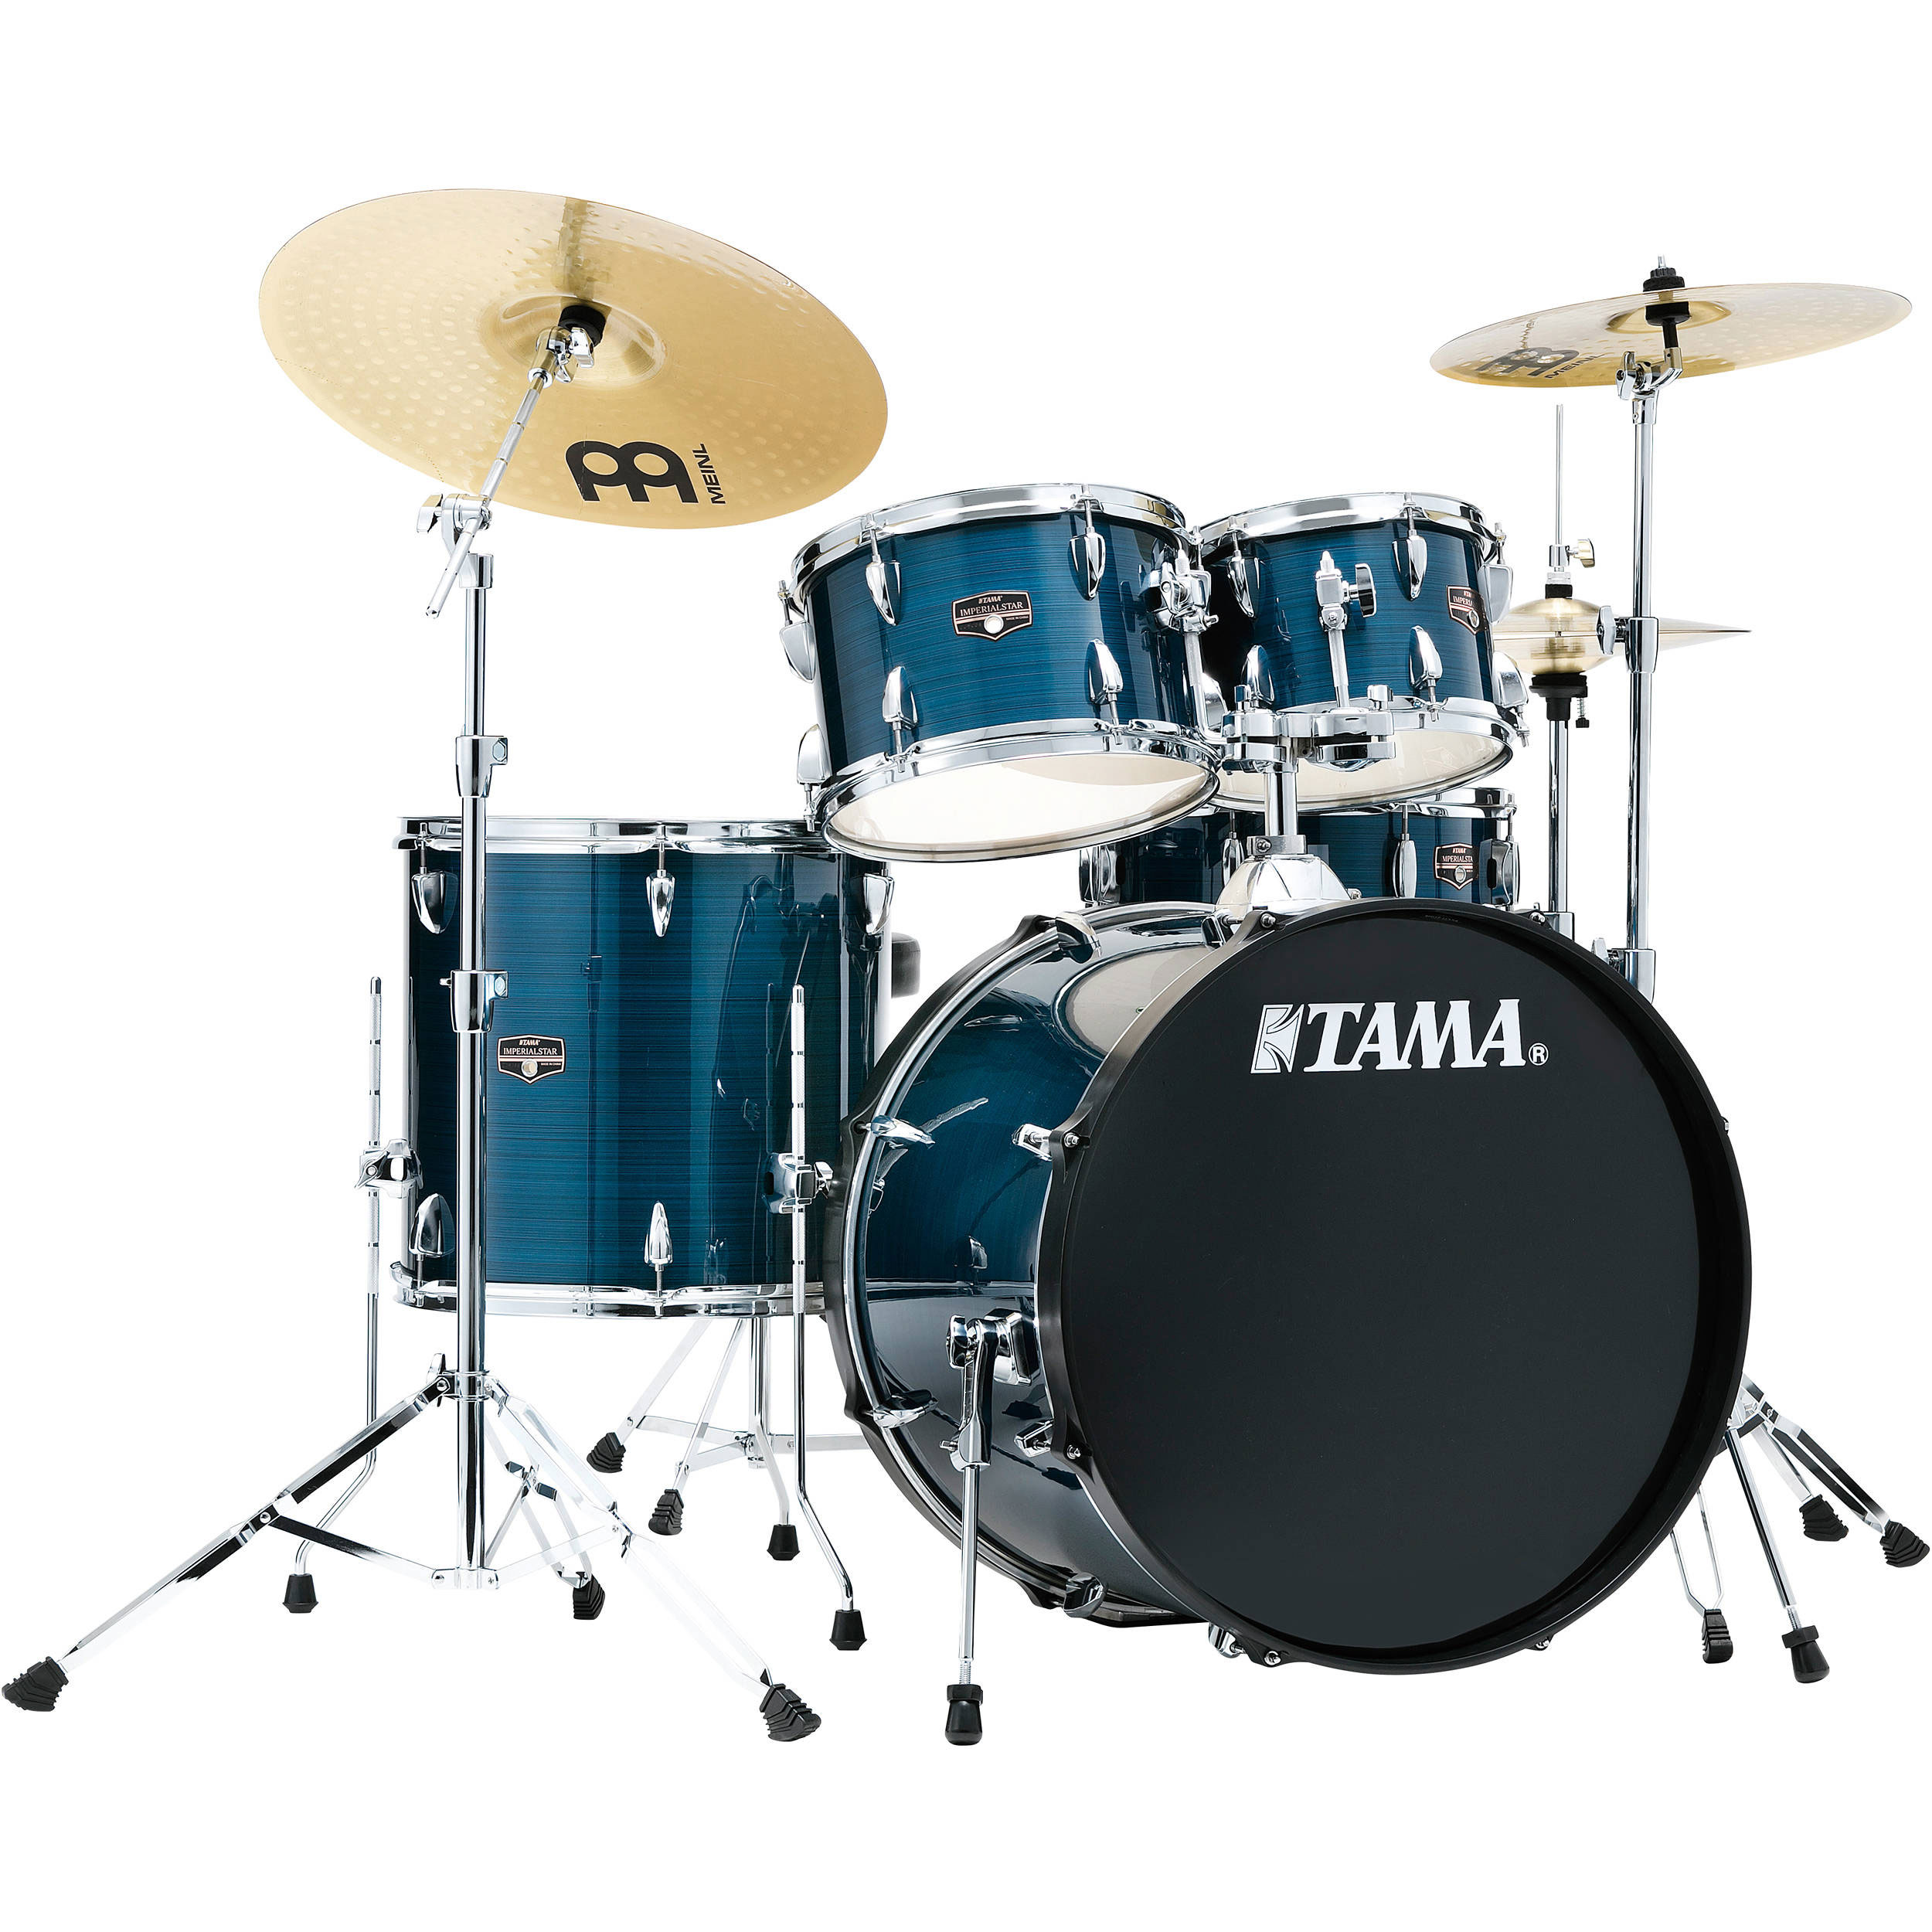 "Tama Imperialstar 5-Piece Drum Set with Hardware and Cymbals (22"" Bass, 10/12/16"" Toms, 14"" Snare)"